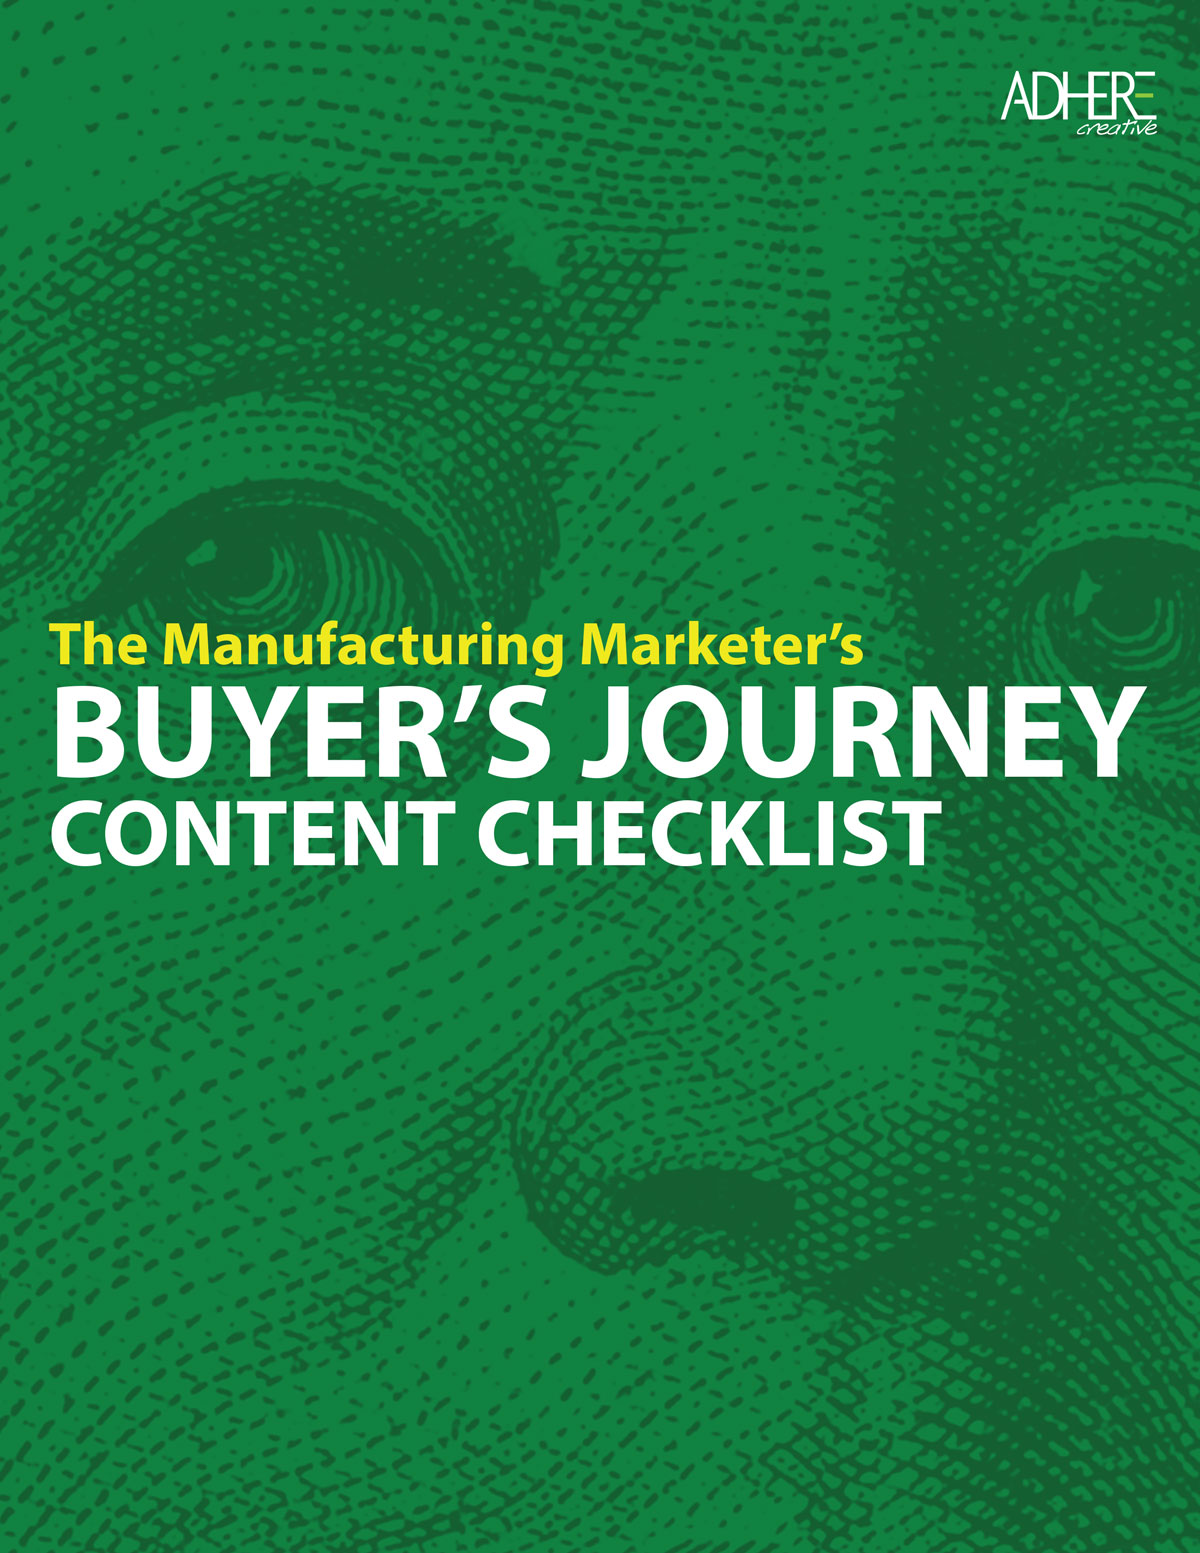 Manufacturing Marketer's Buyer's Journey